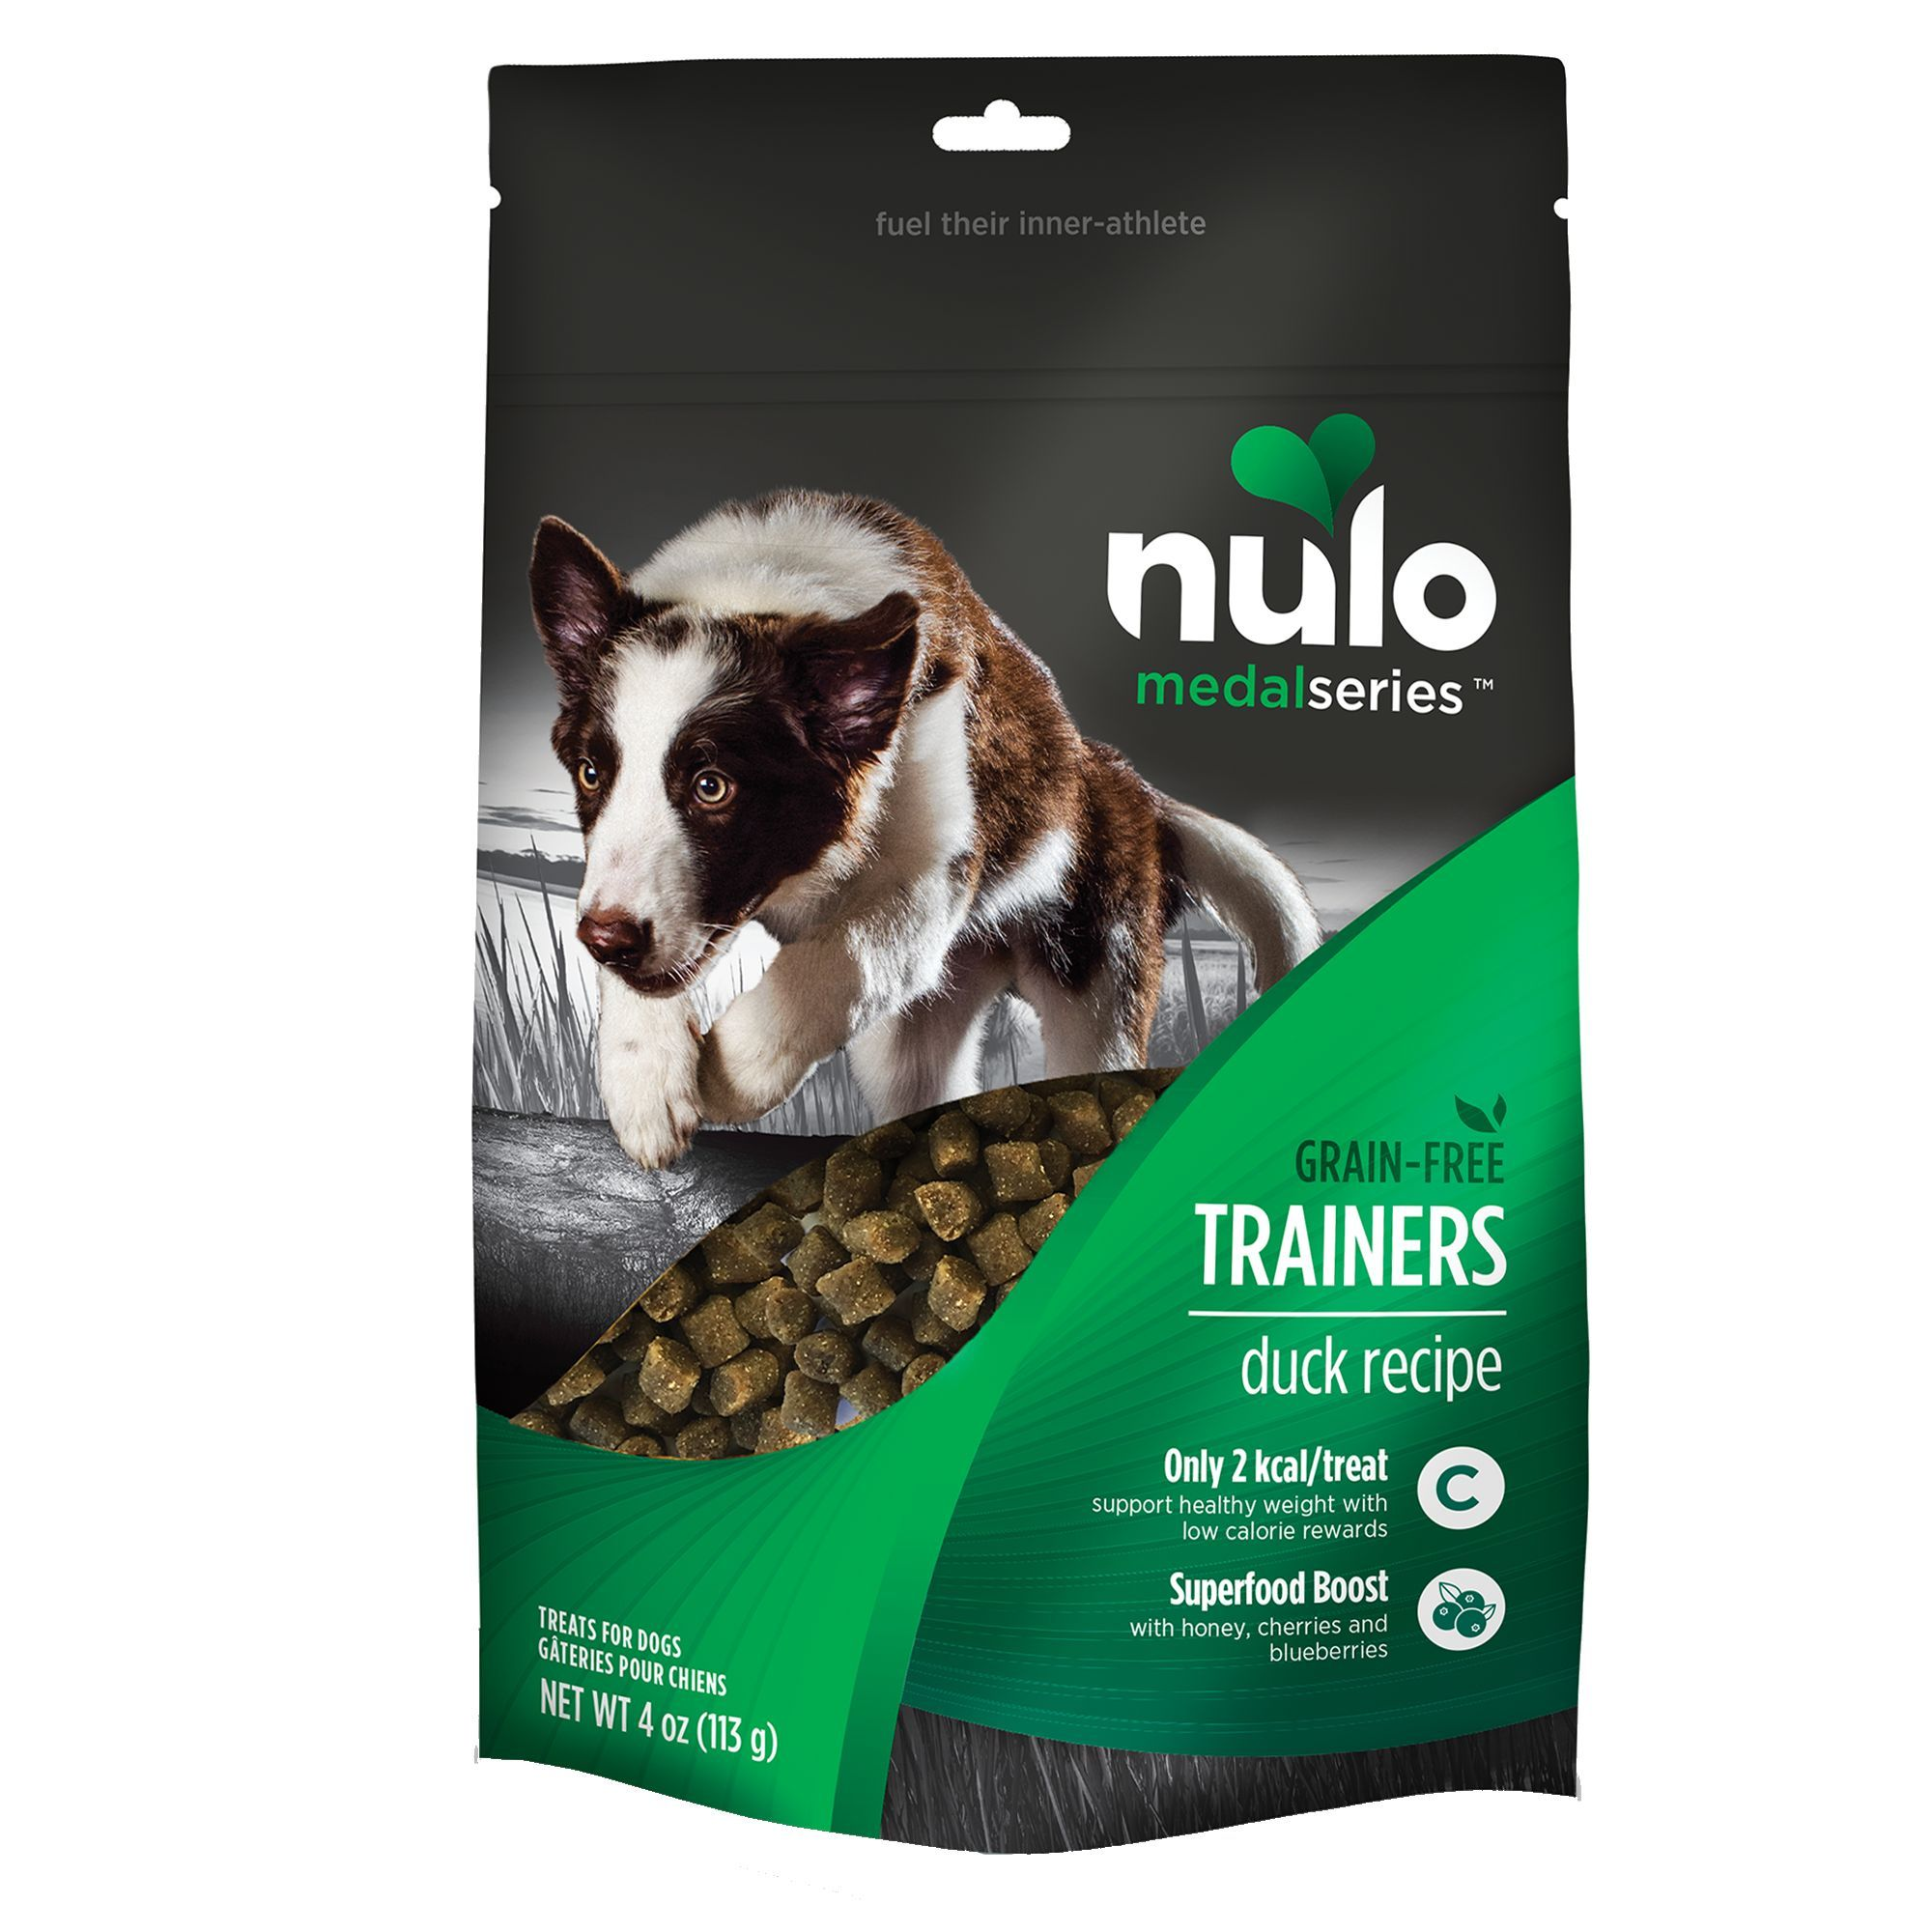 Nulo Medalseries Trainers Dog Treat Natural Grain Free Duck